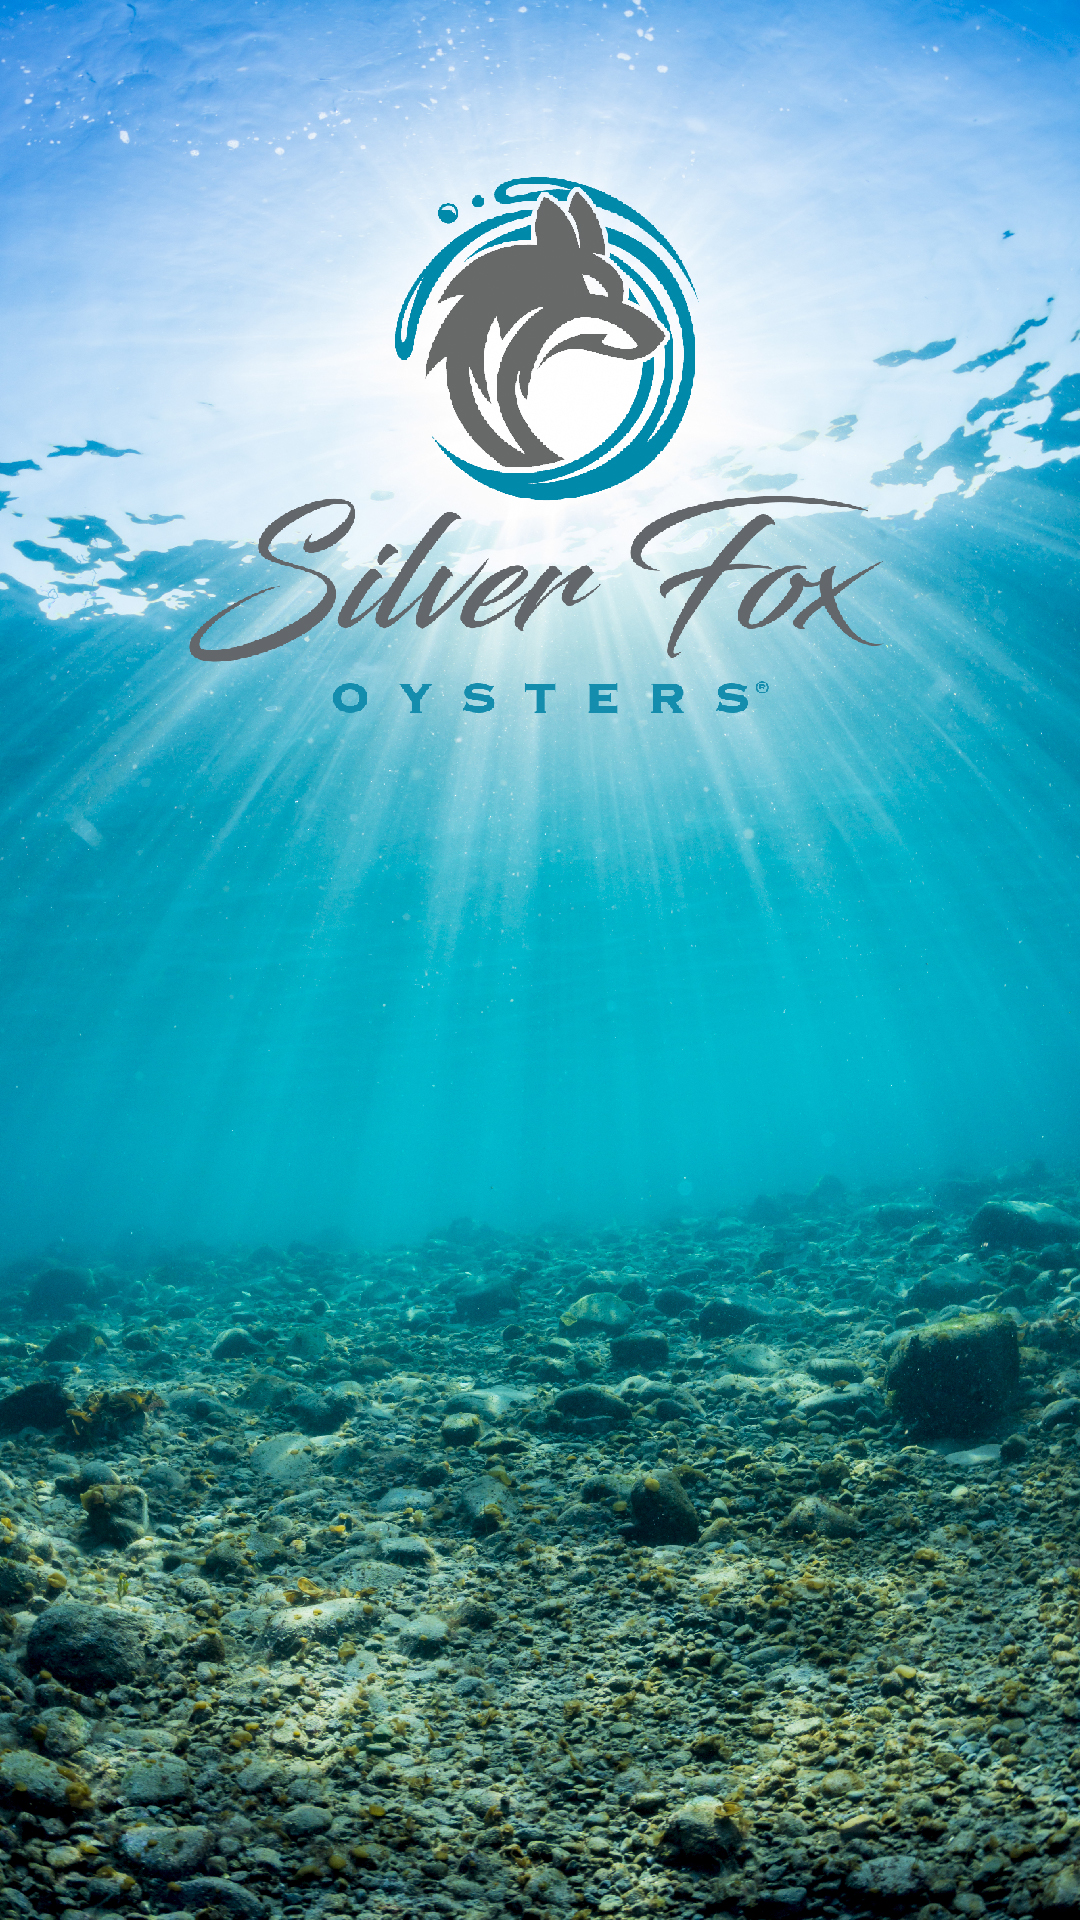 Silver Fox Oysters Ad